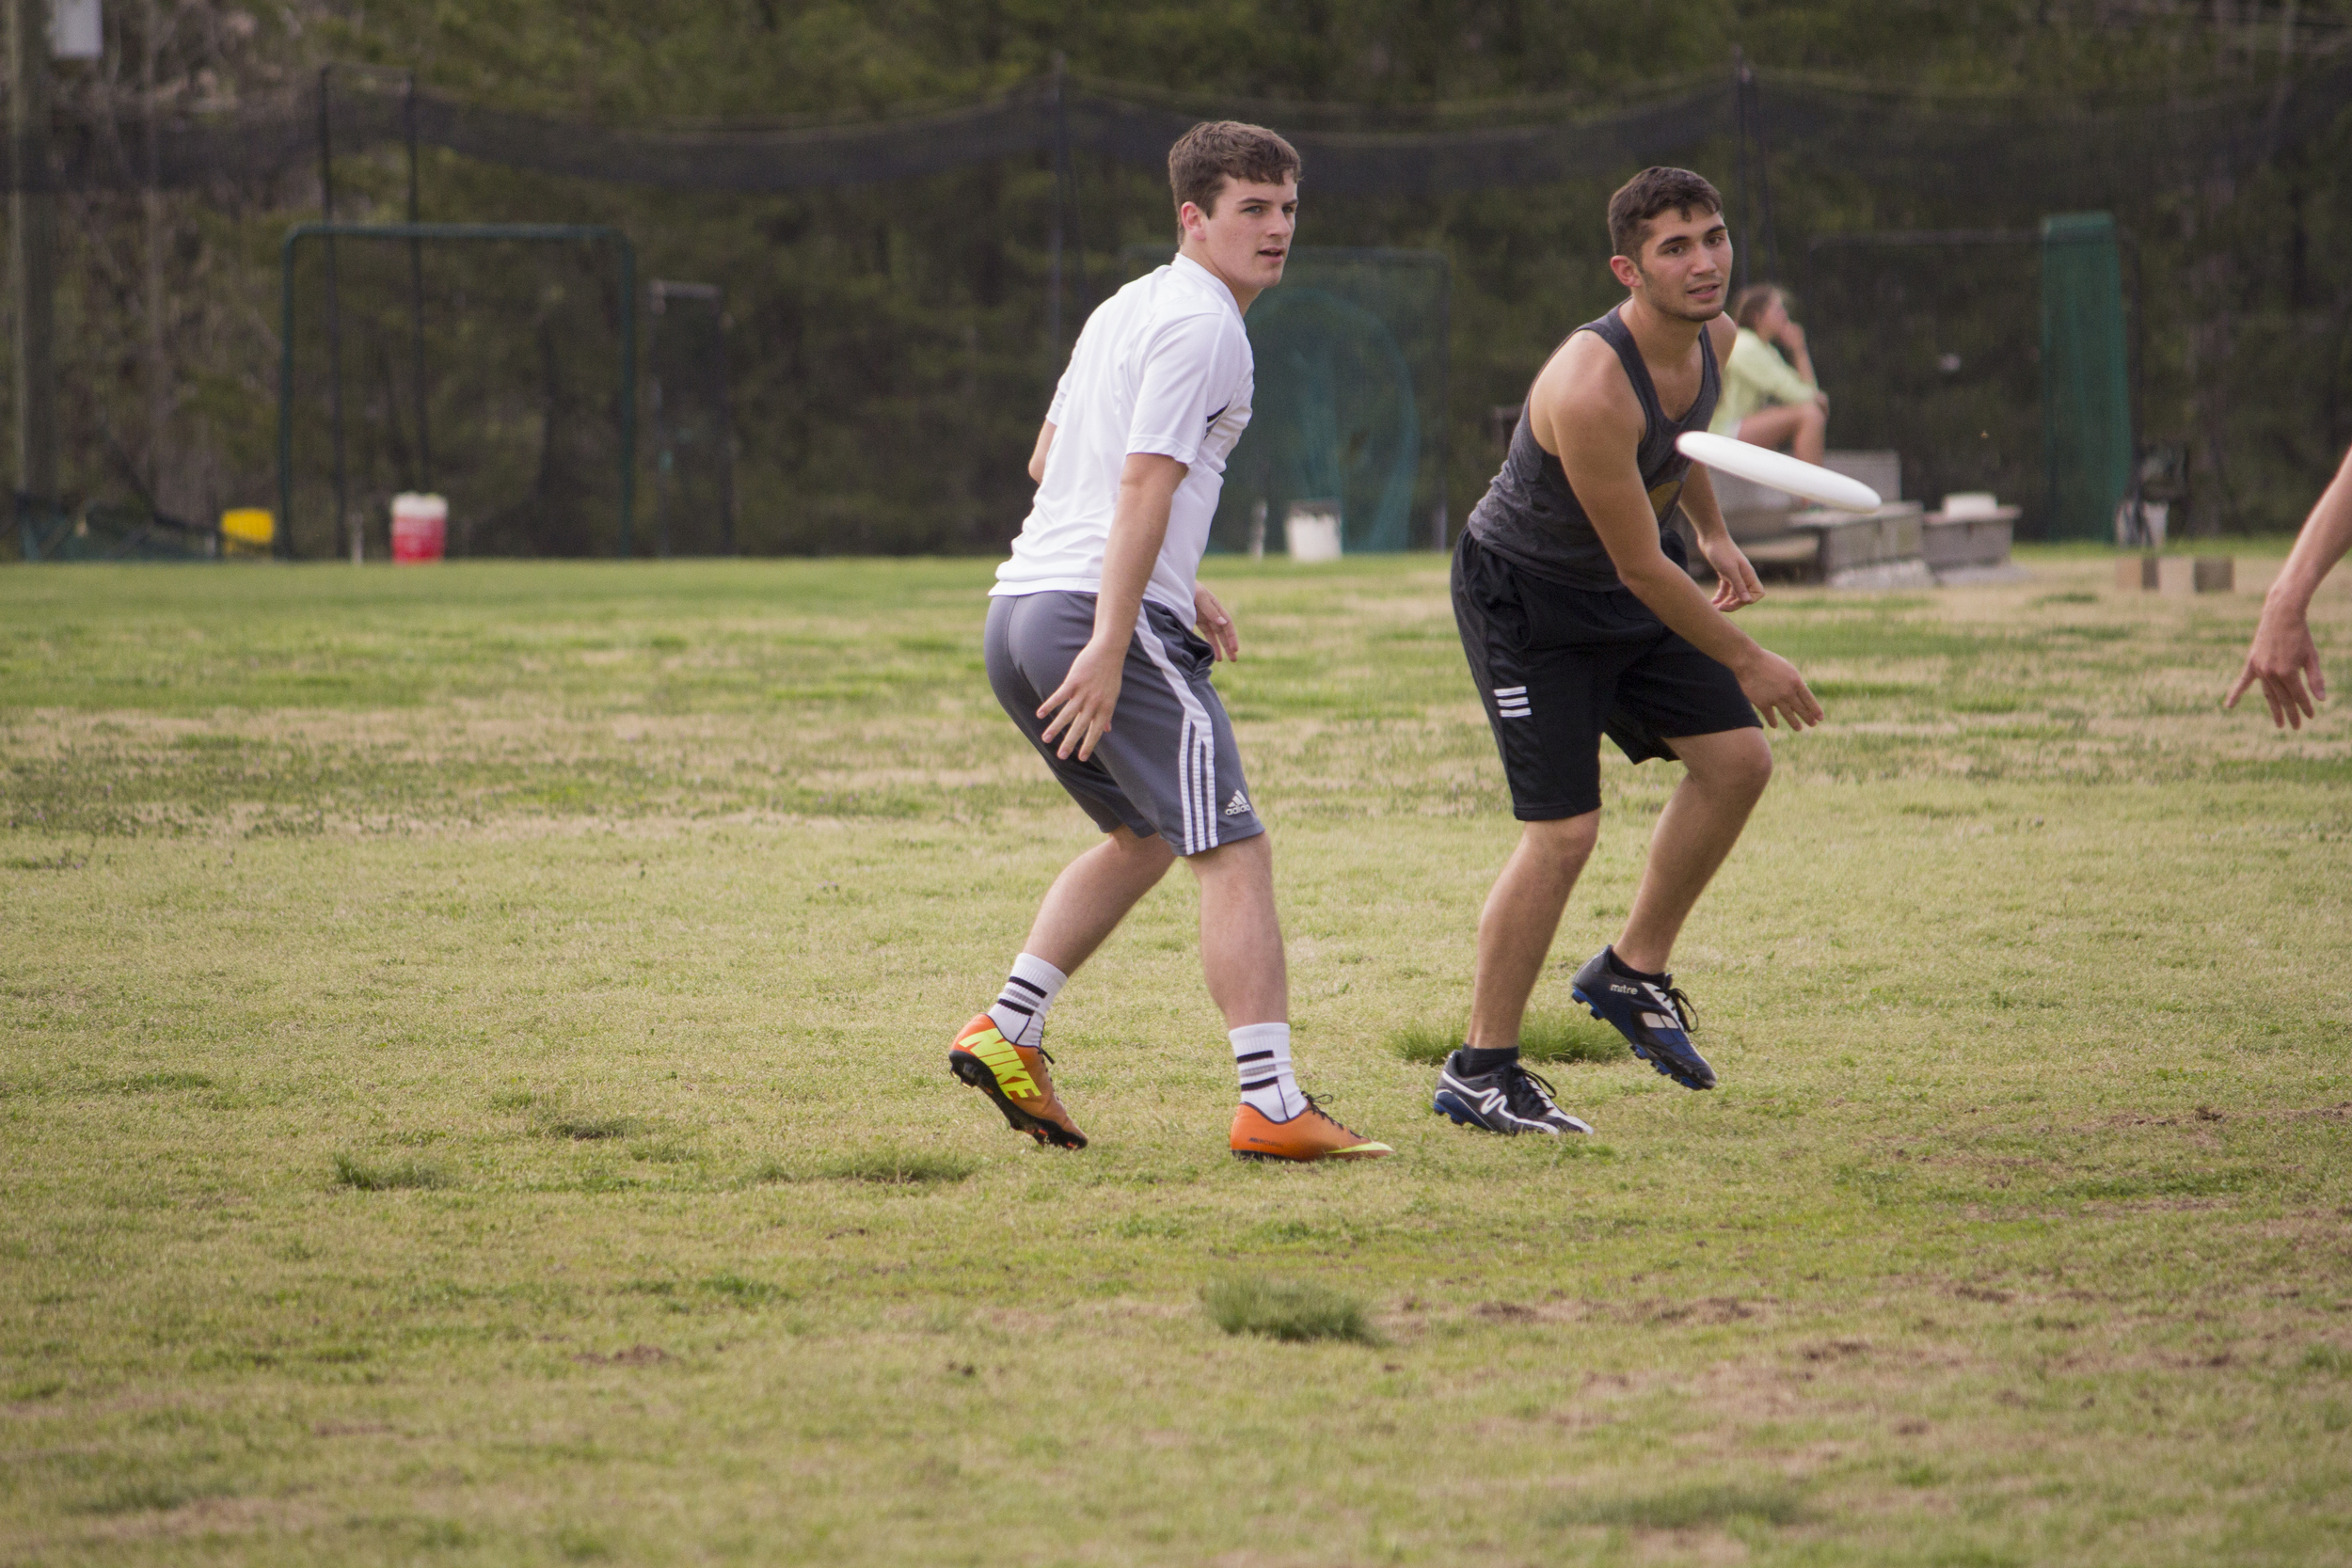 Josh Mckeown throws ahead to his teammate.